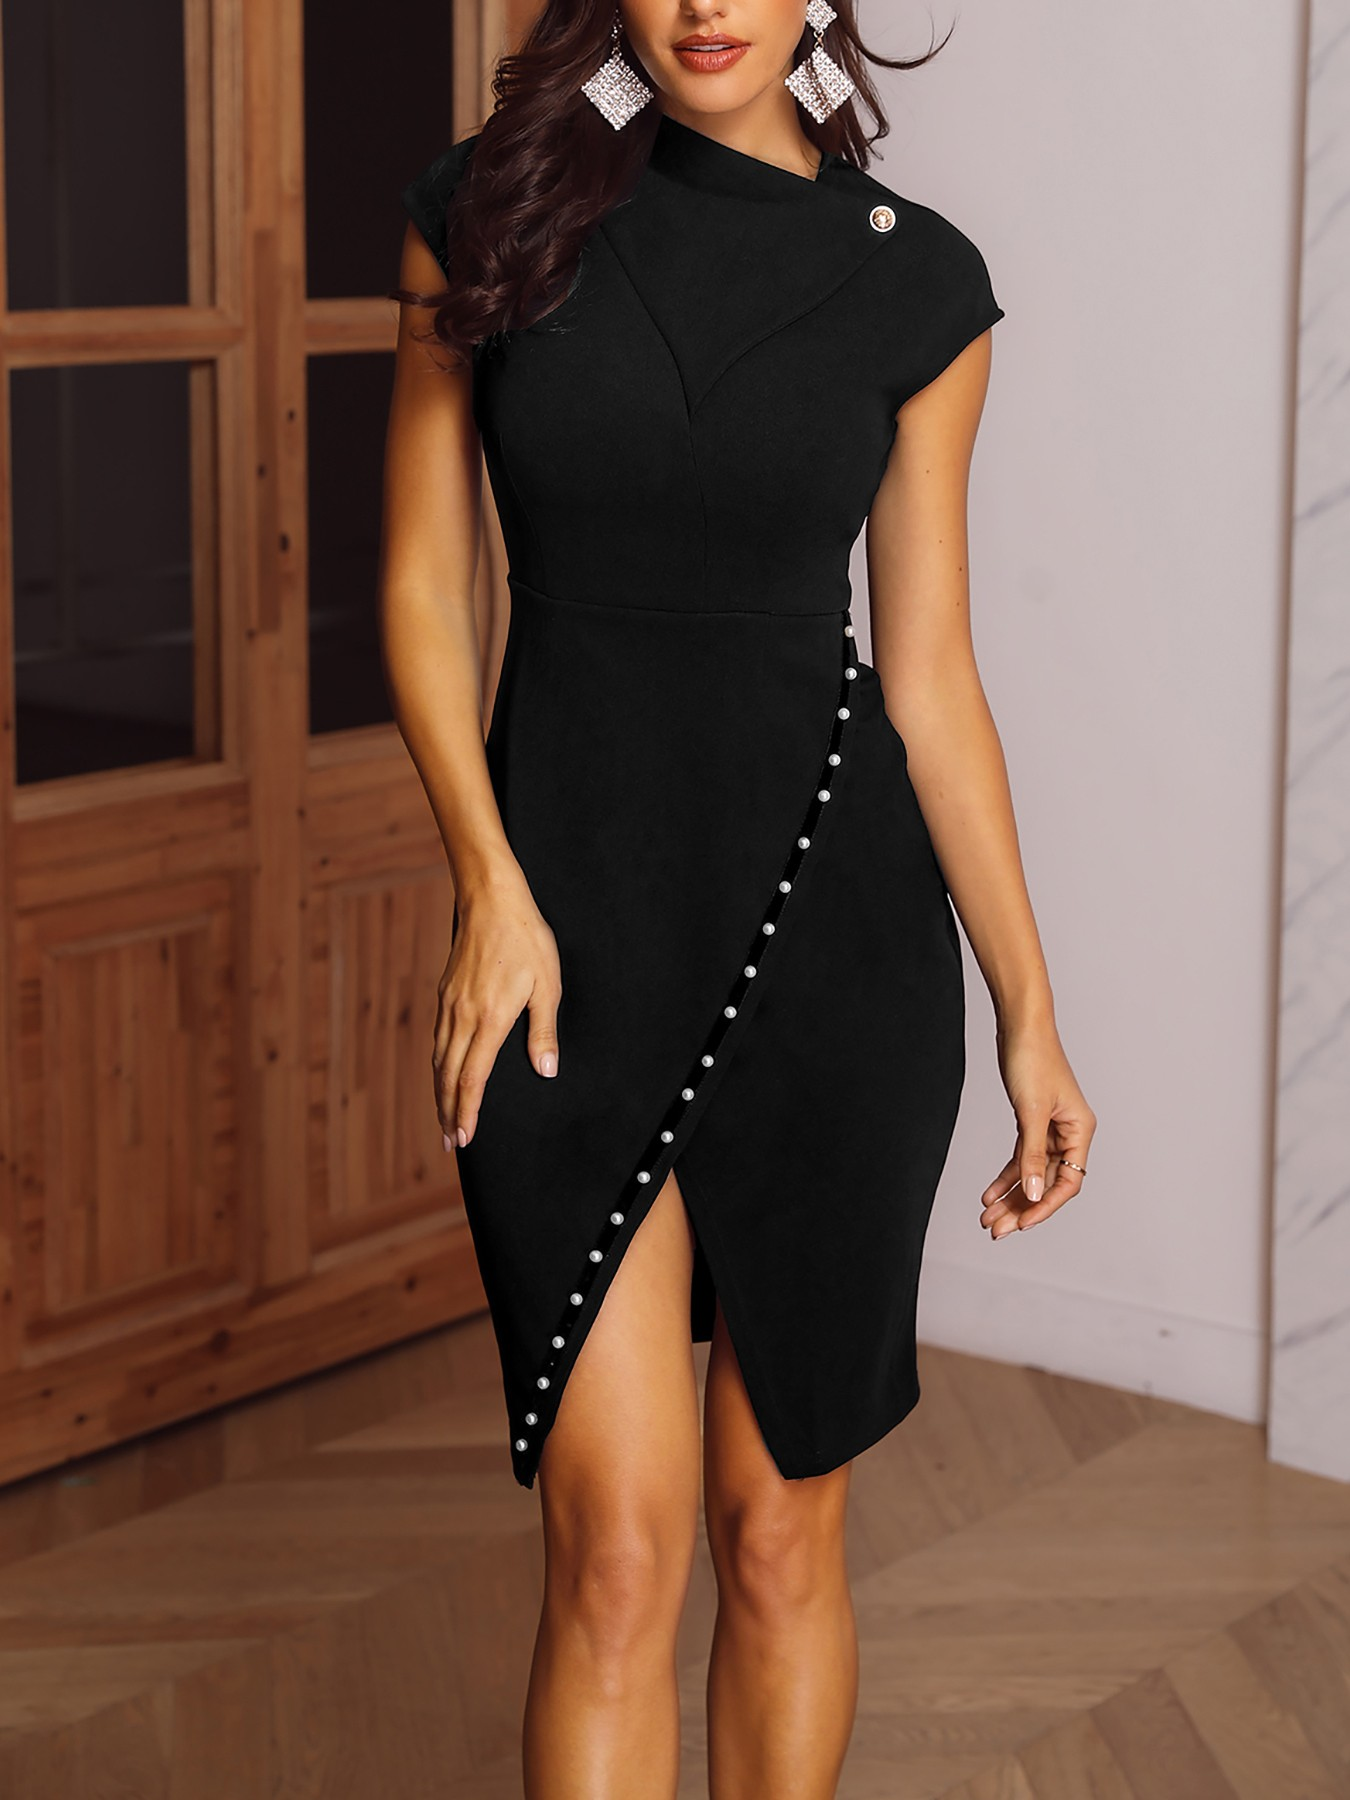 boutiquefeel / Beading Embellished Slit Irregular Midi Dress